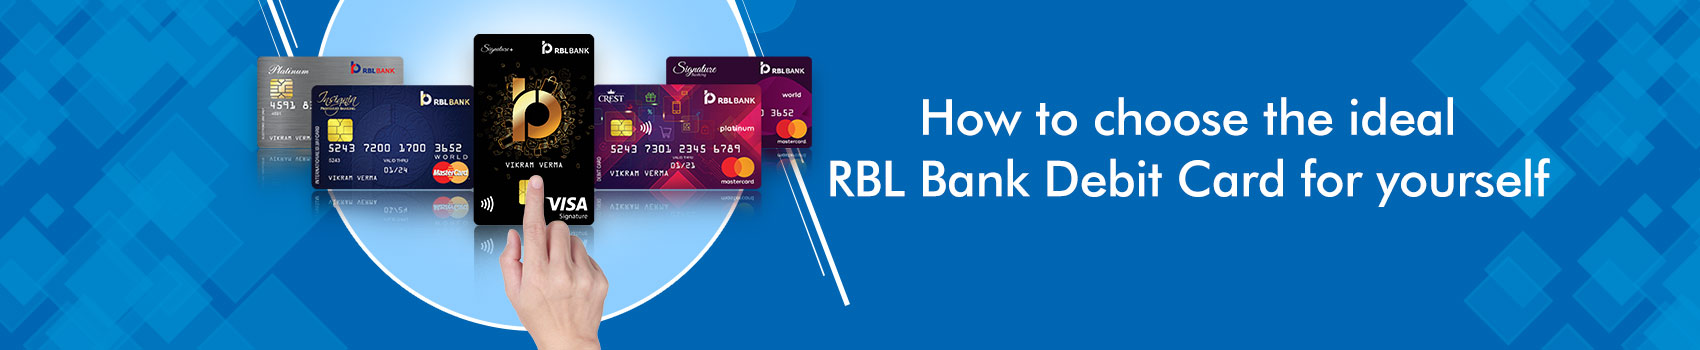 How to choose the ideal RBL Bank Debit Card for yourself